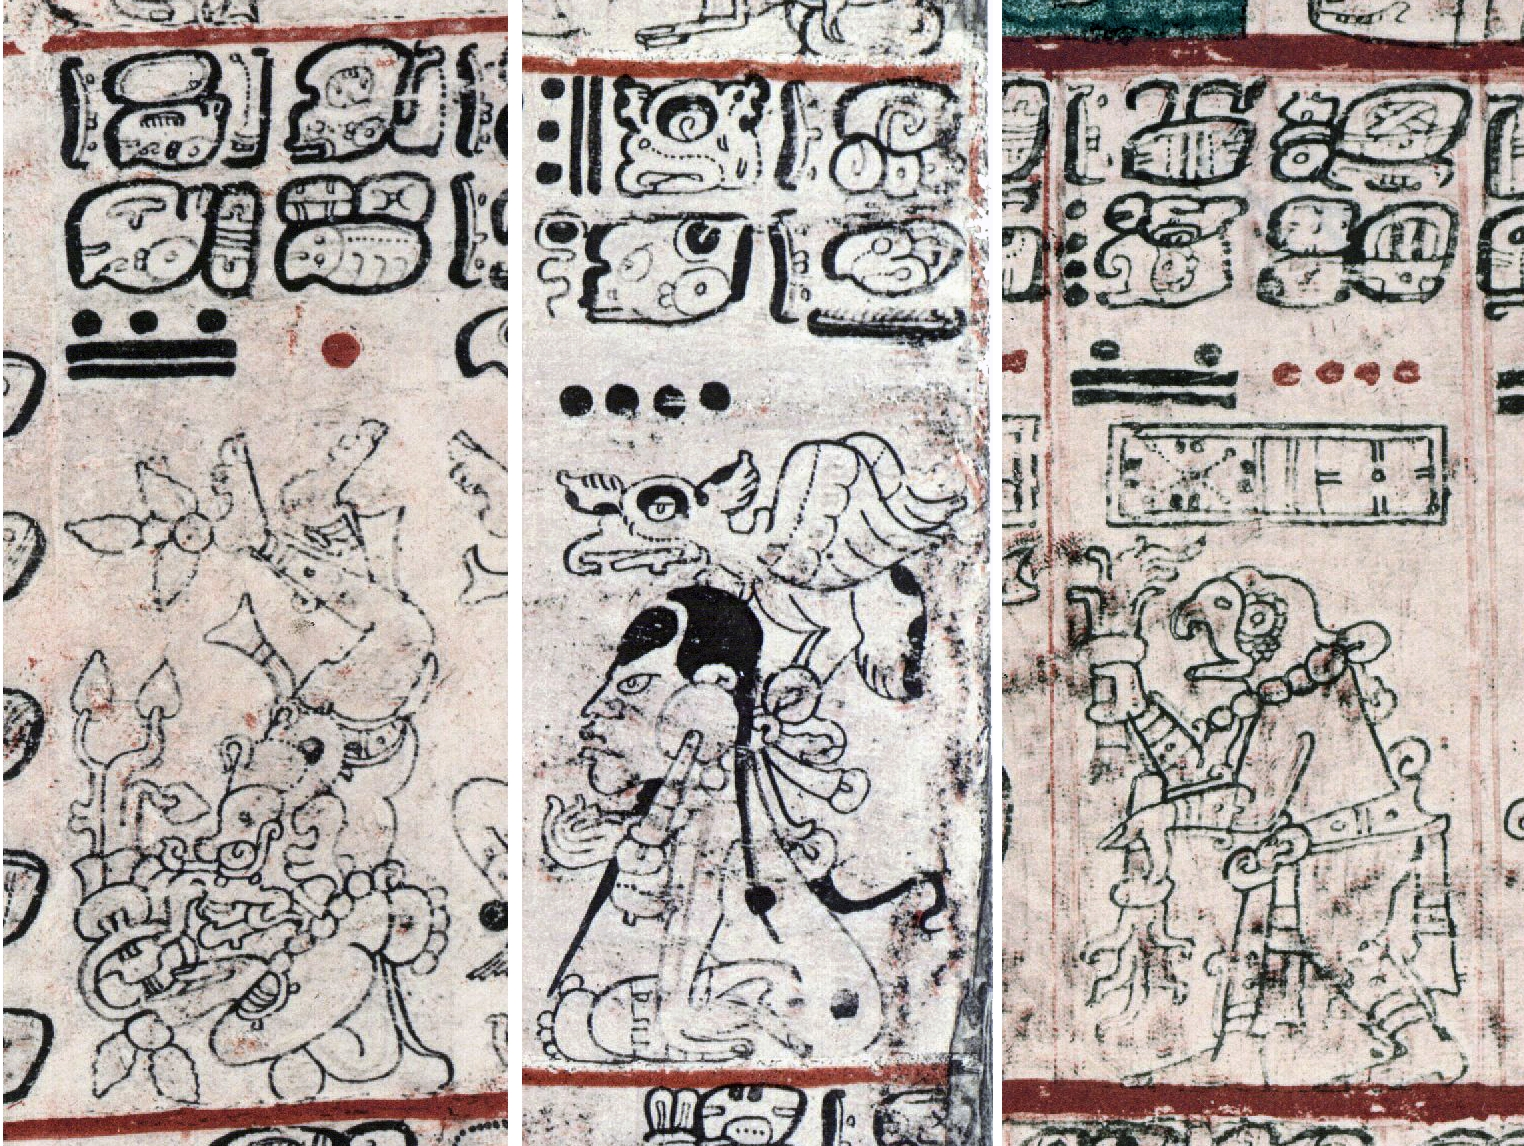 FIGURE 10. Details of the Codex Dresden, from pages 15b (left), 18b (center), 40b (right).